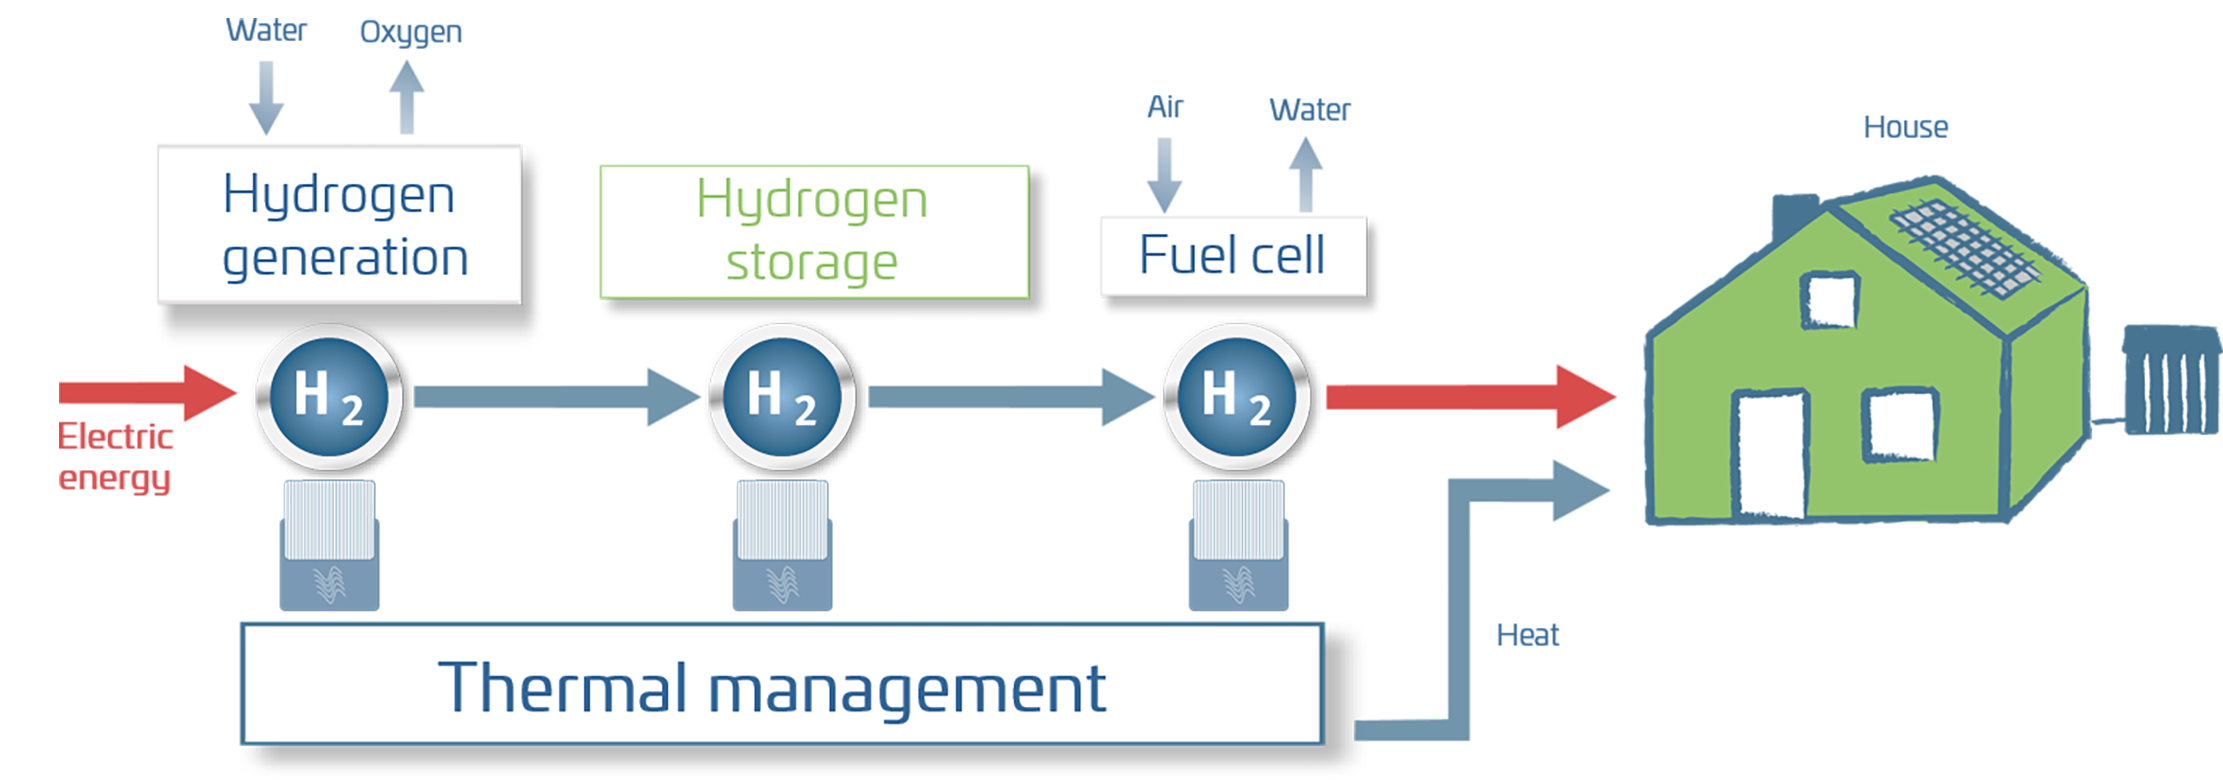 Demo project - Metal hydride H2-E2E(Th) system (02).png